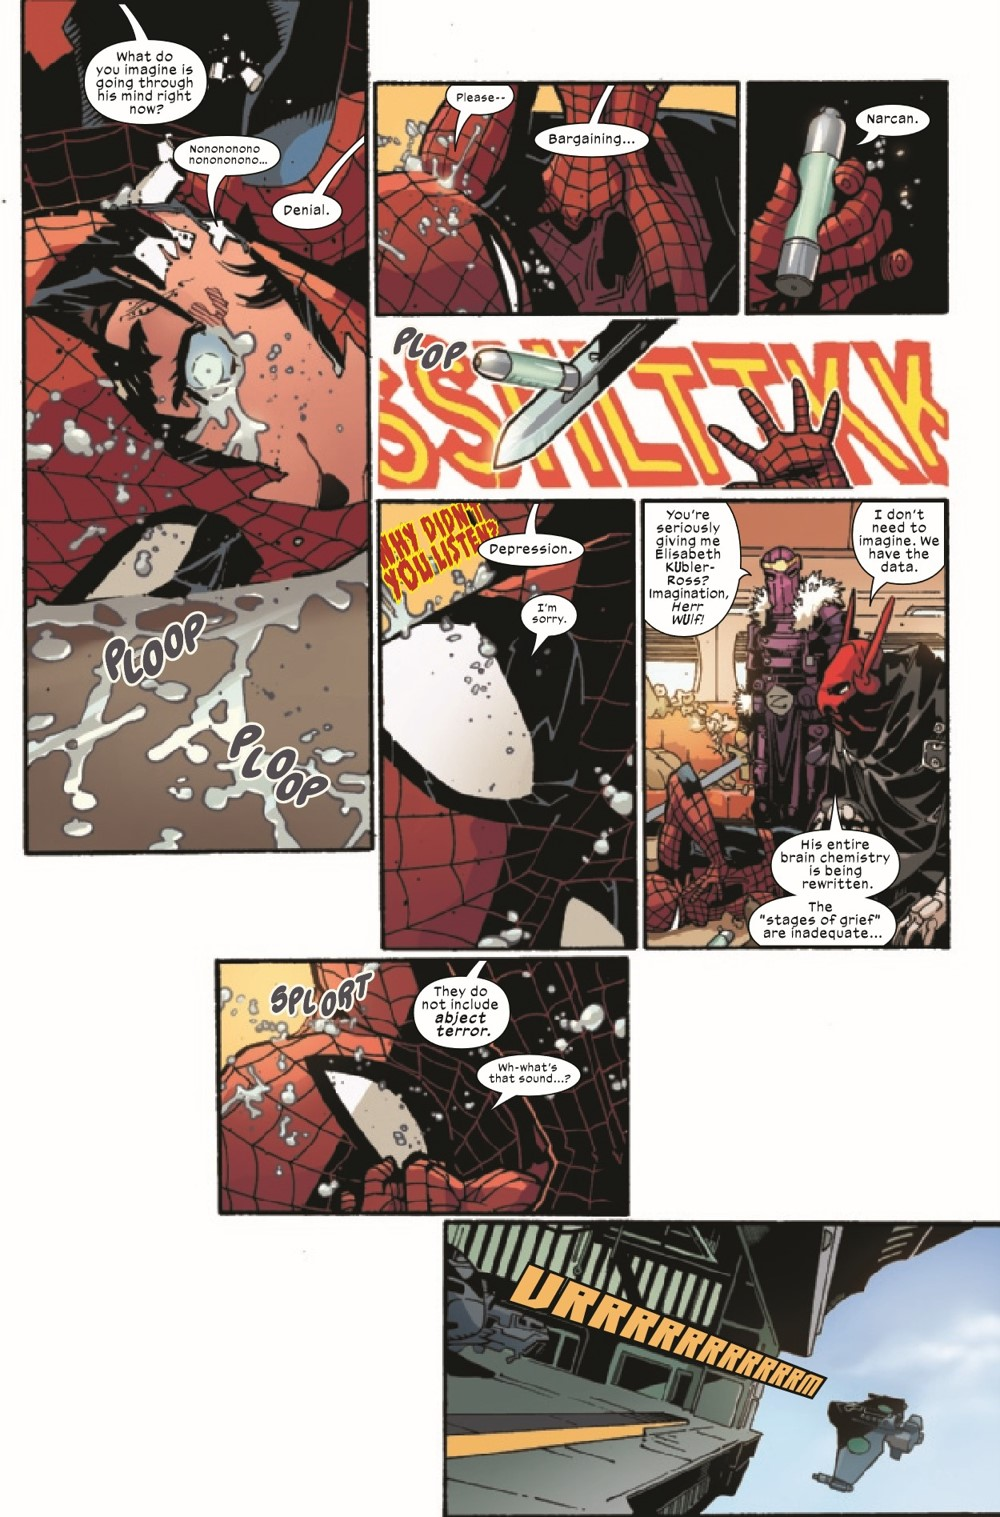 NONSTOPSM2021005_Preview-3 ComicList Previews: NON-STOP SPIDER-MAN #5